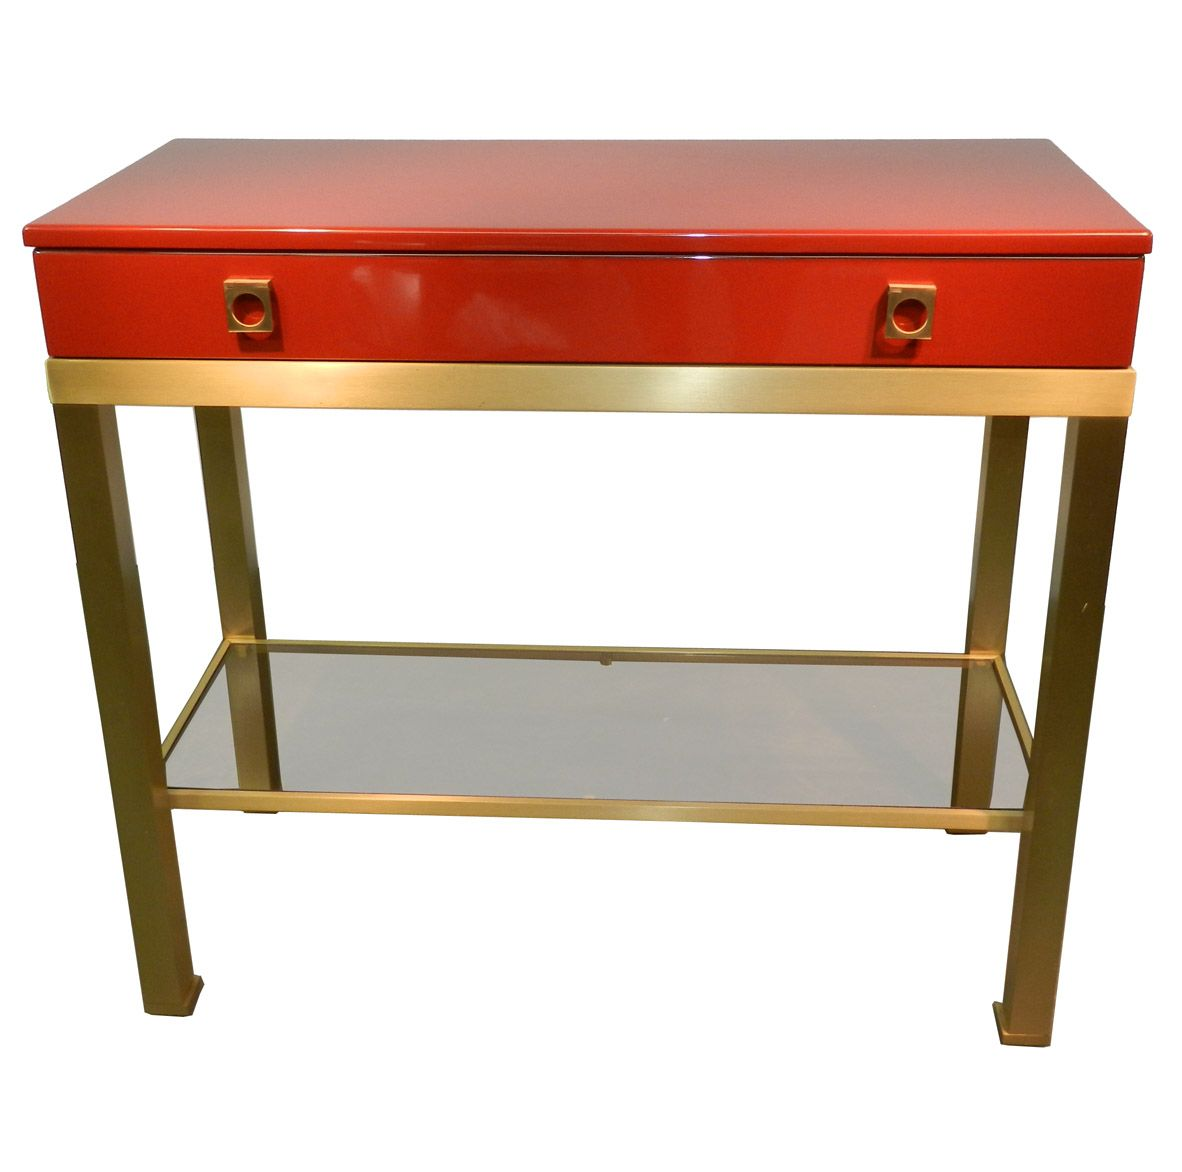 Vintage console table and mirror by guy lefevre 1970s for sale at pamono Retro sofa table